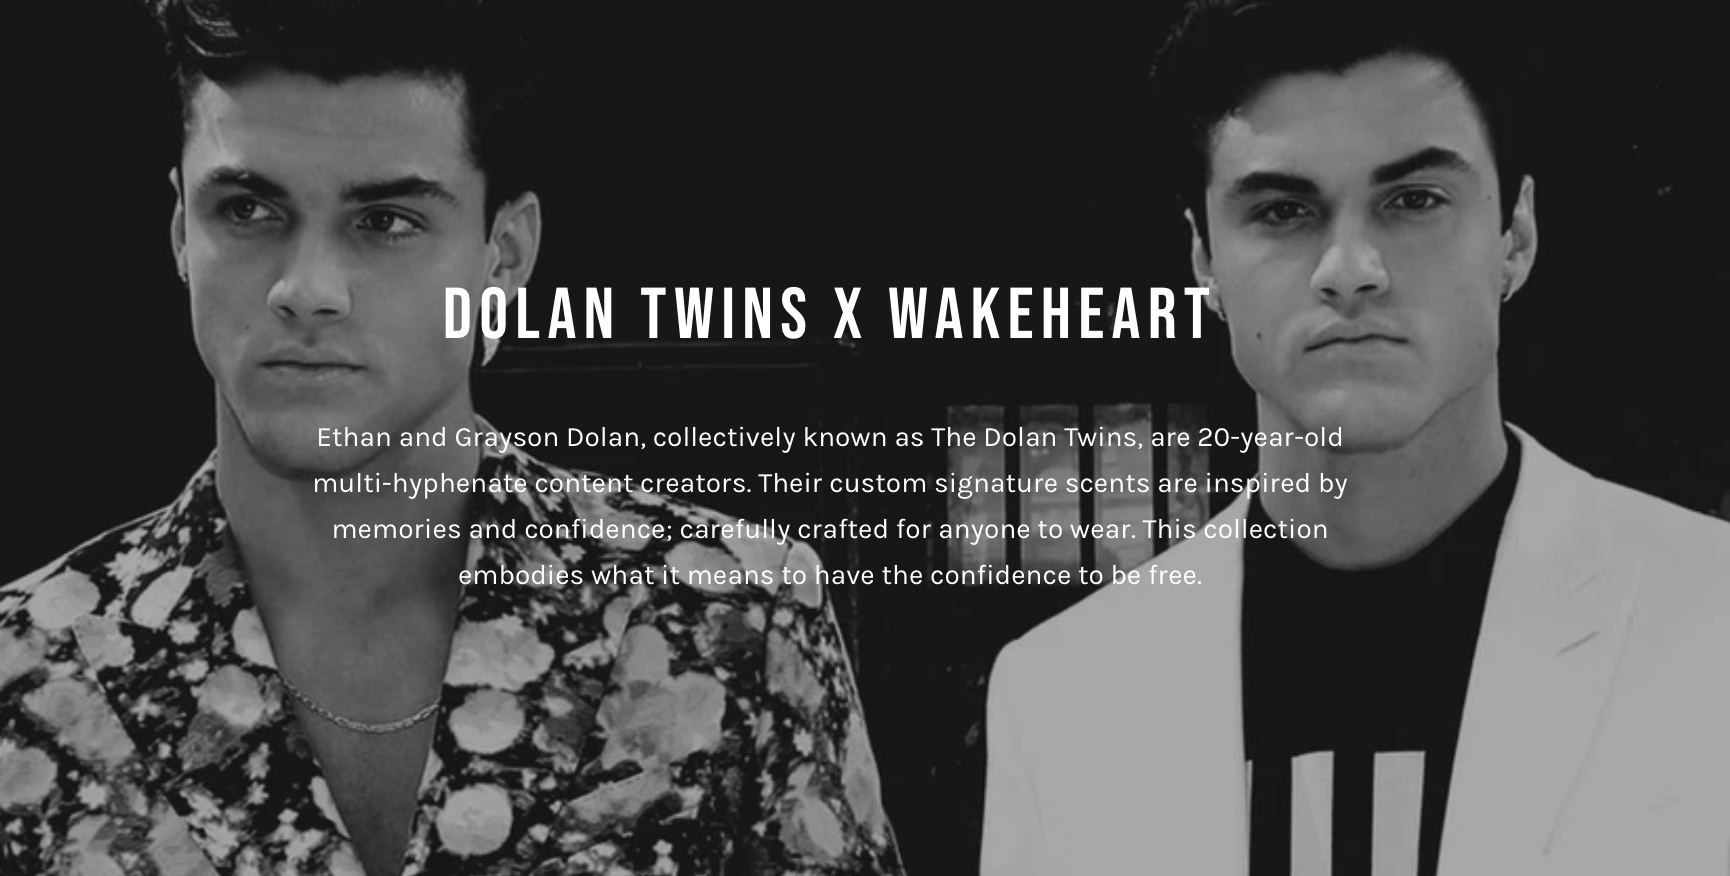 An advertisement for Wakeheart's signature scents featuring co-founders Ethan and Grayson Dolan, with text describing the brand's beginnings super-imposed on the image.